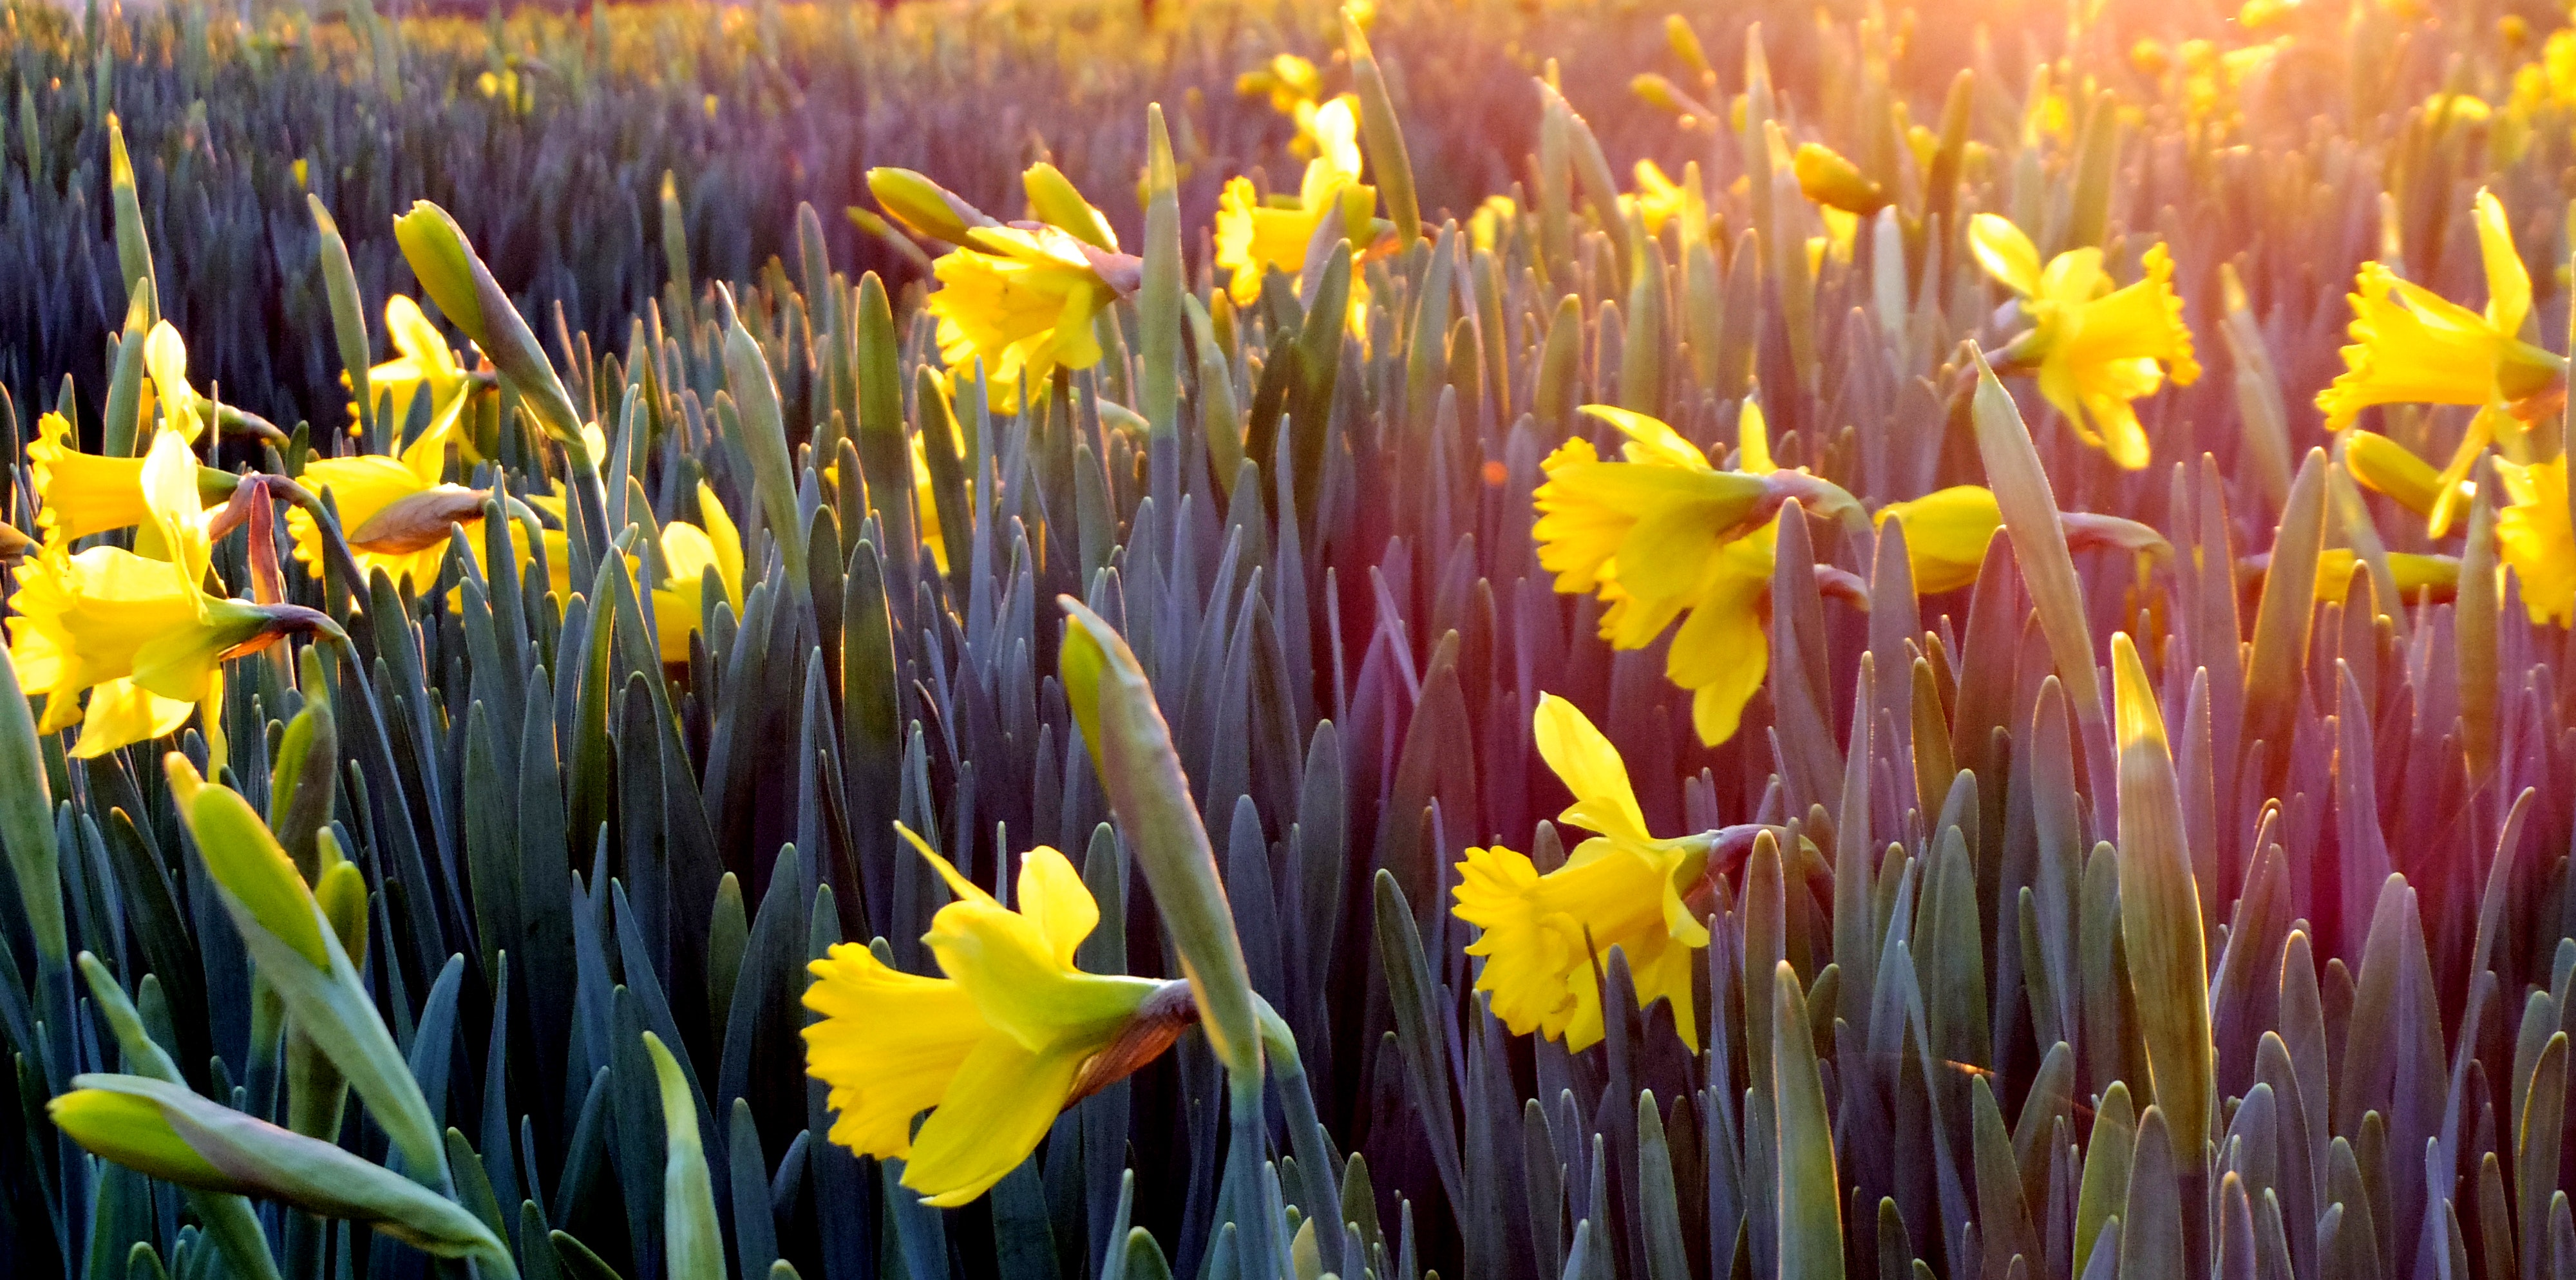 Spring Forward - How to honor and celebrate the spring holidays and traditions